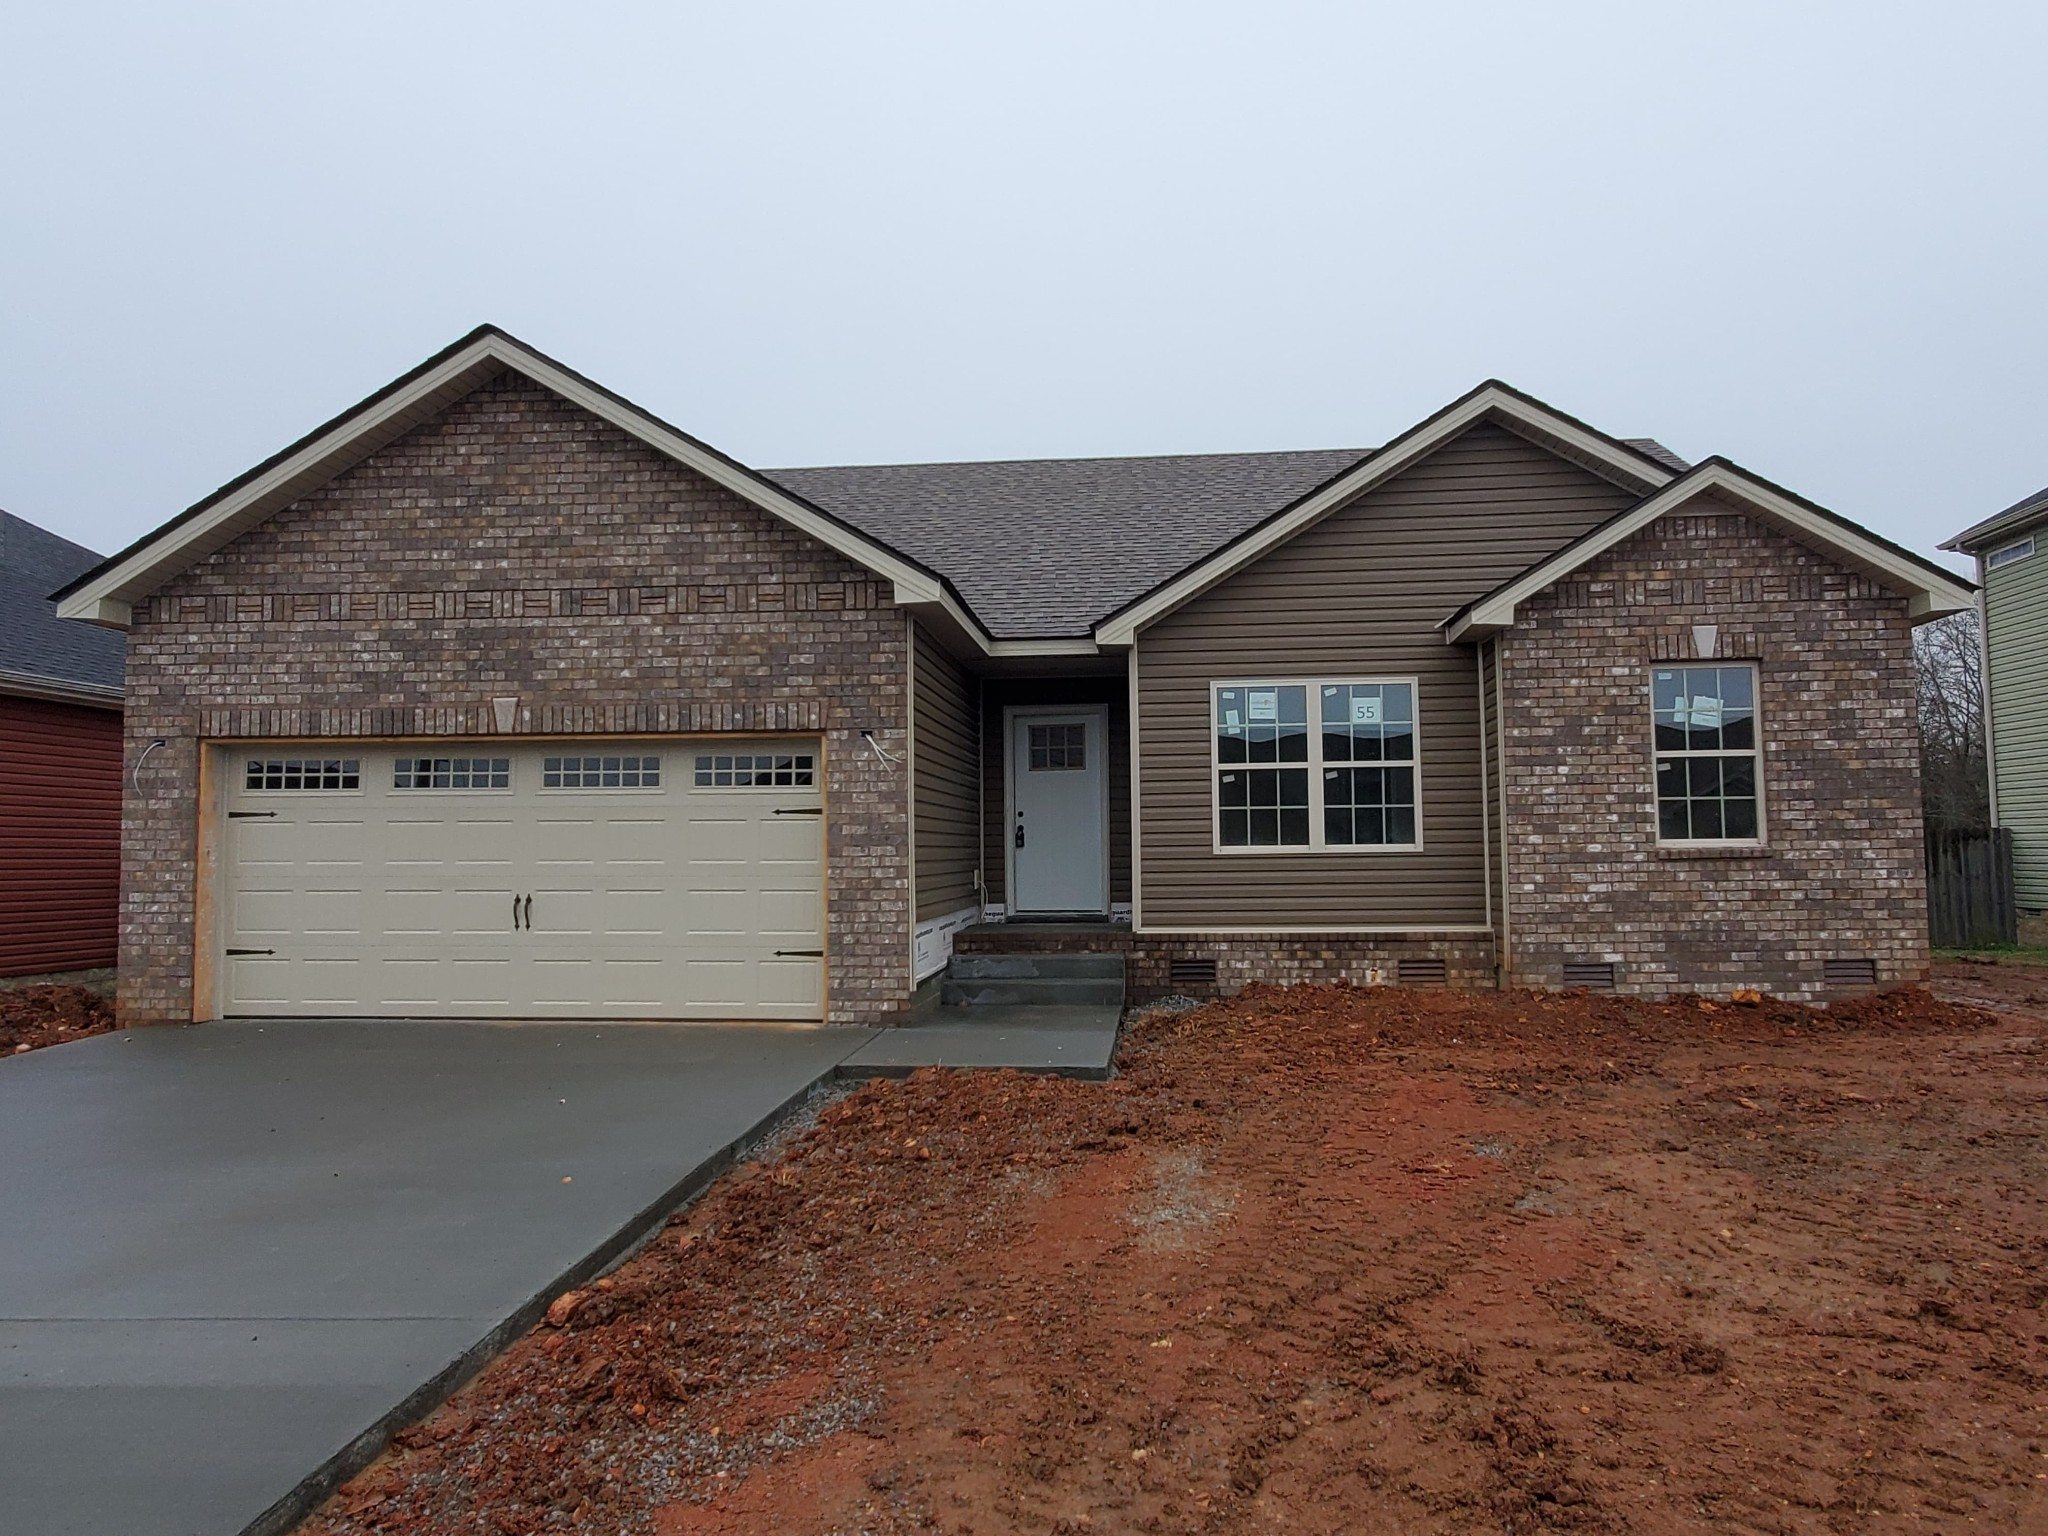 55 Rose Edd Estates, Oak Grove, KY 42262 - Oak Grove, KY real estate listing